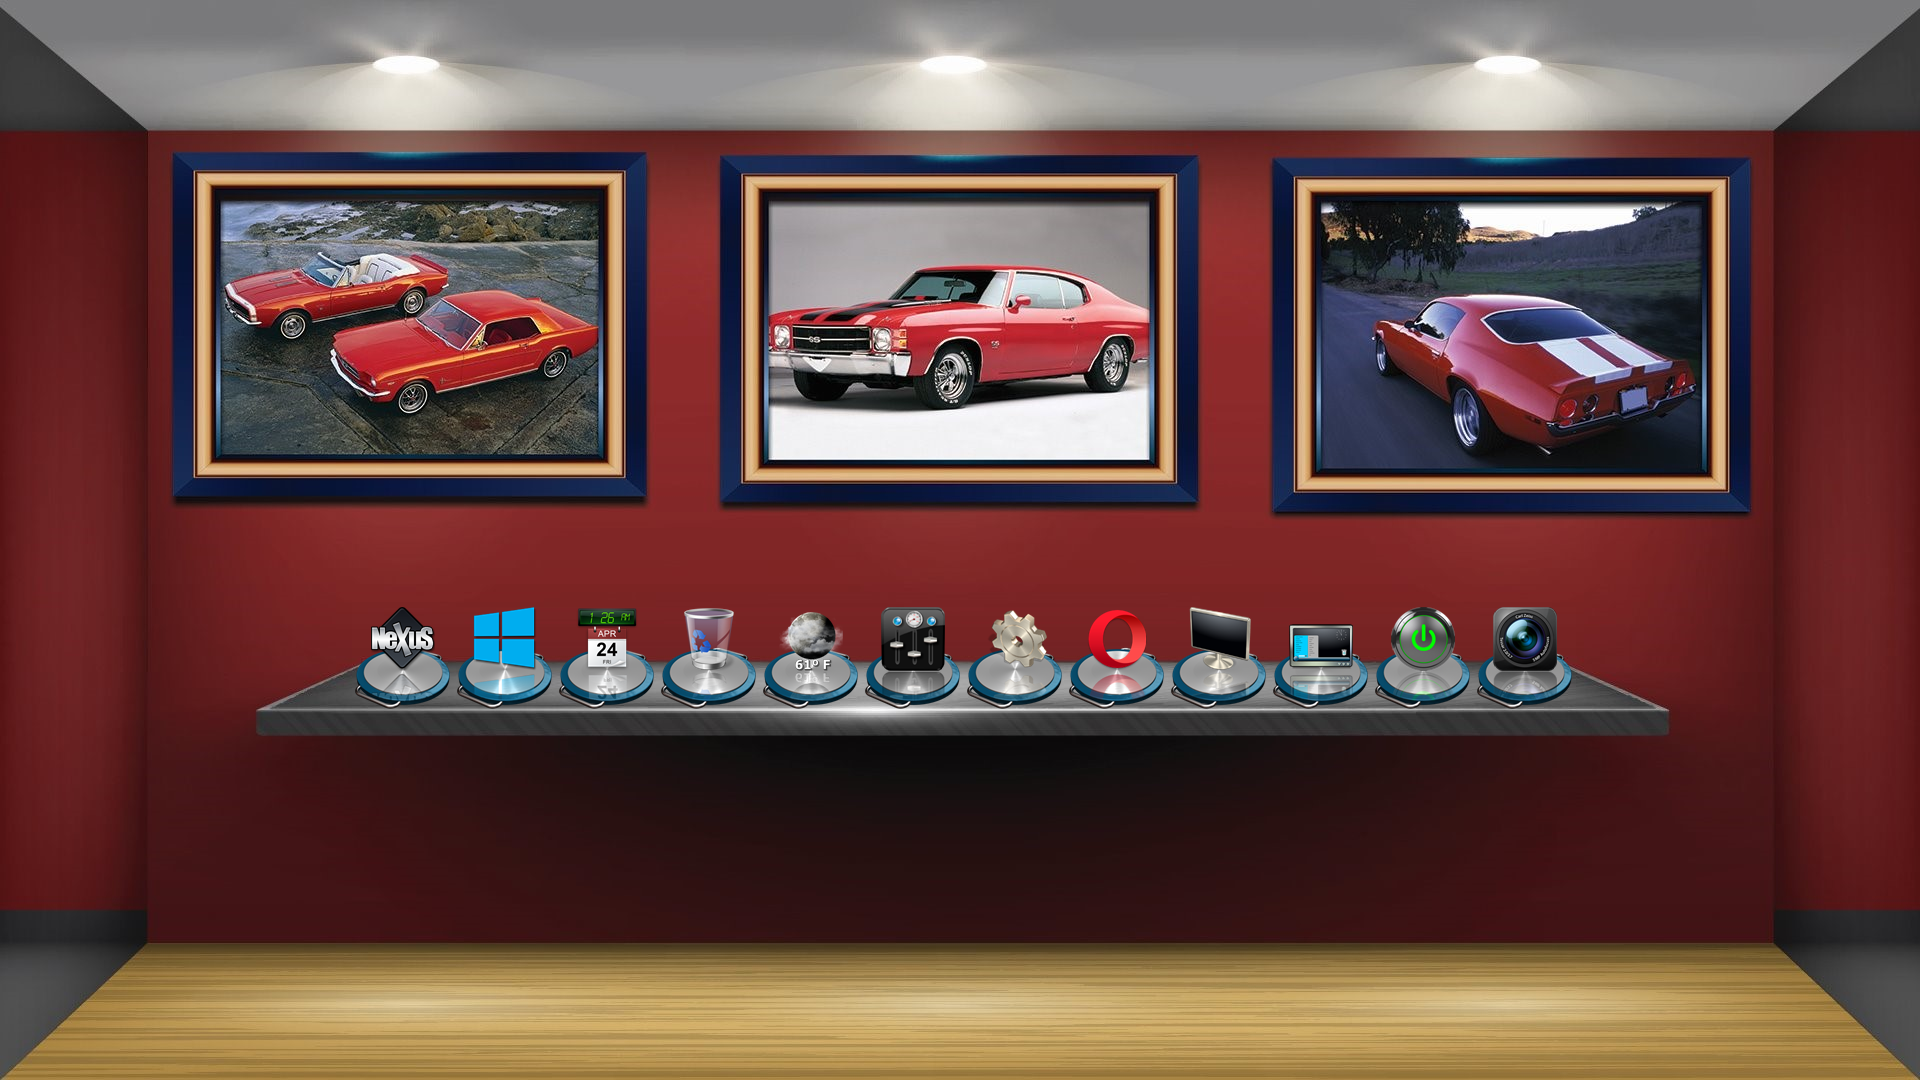 Display Booth with Cars